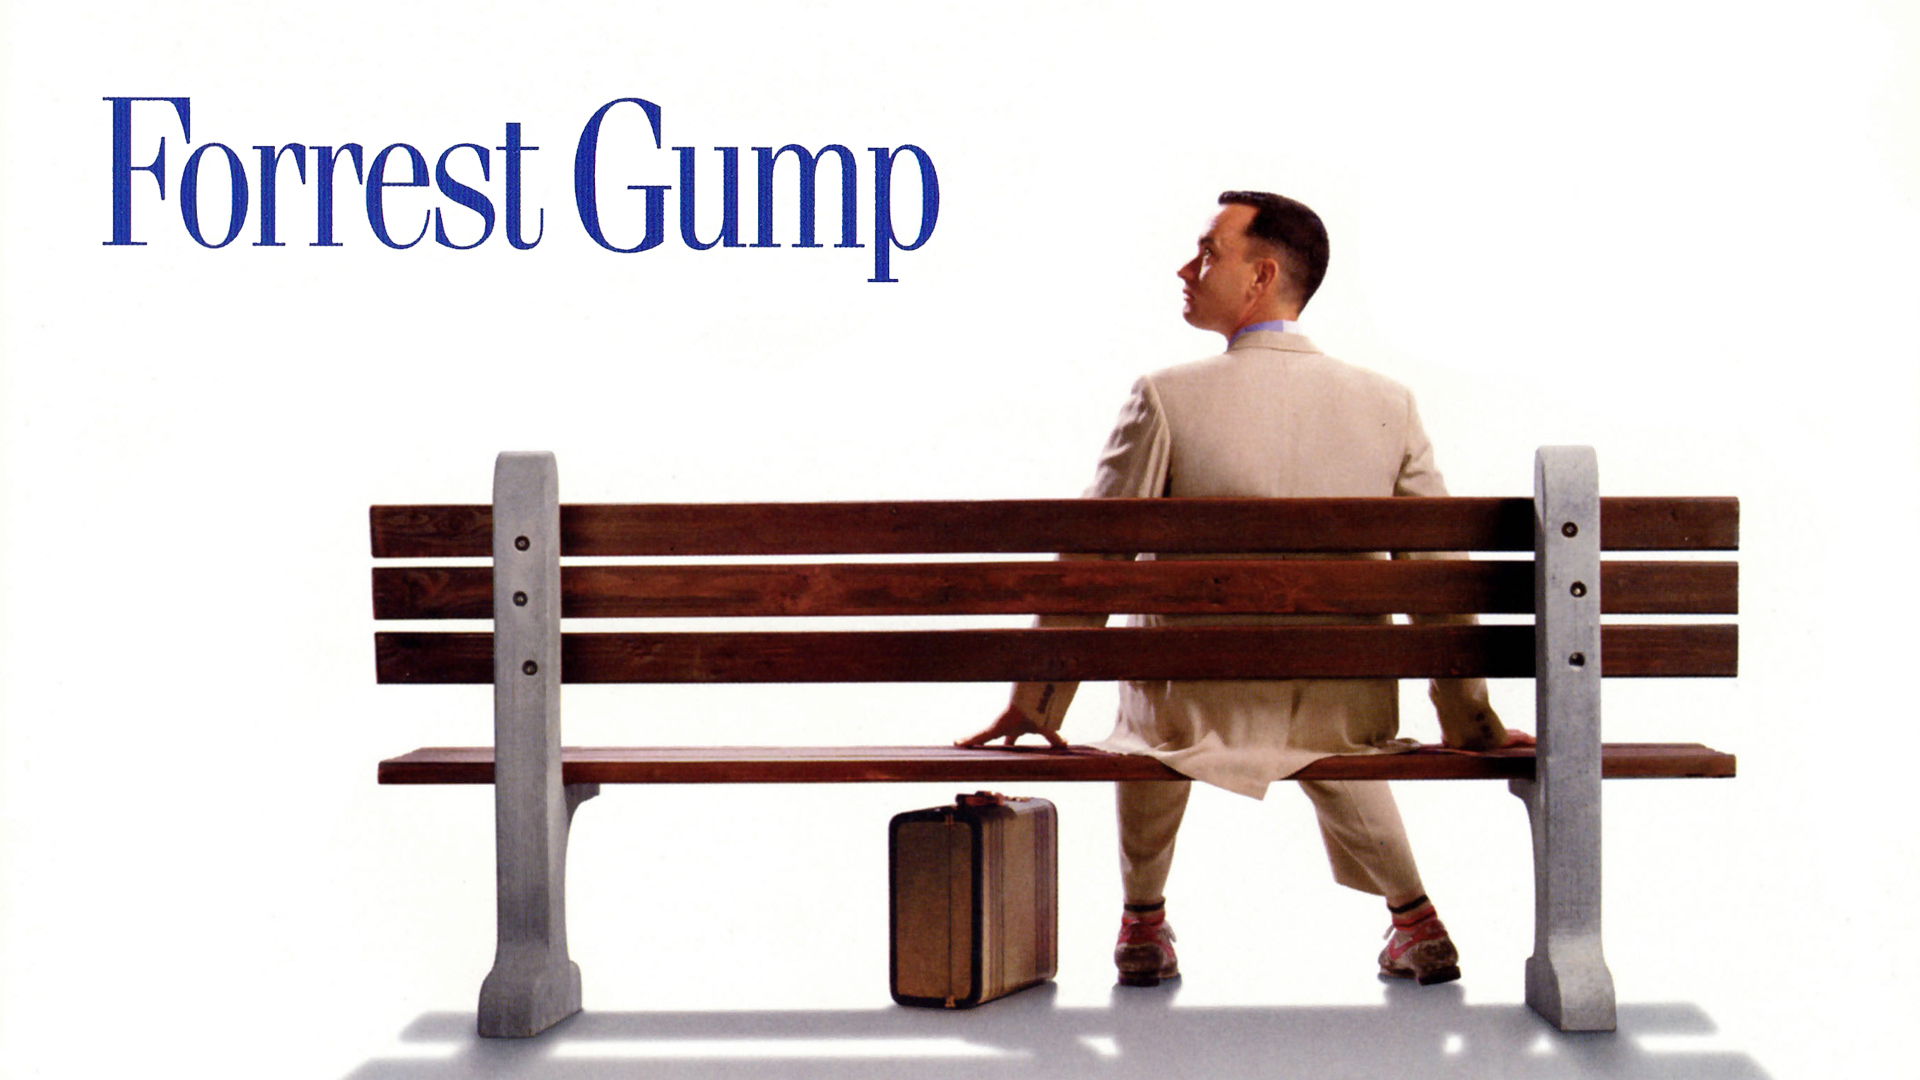 a review of tom hanks forrest gump Audience reviews for forrest gump with a fine performance by tom hanks, this is a refreshing feel-good movie that is always fun and charming, even if sometimes sentimental and a bit vague about its purpose - and if you are able to overlook its flaws, you will find a captivating story of innocence and optimism.